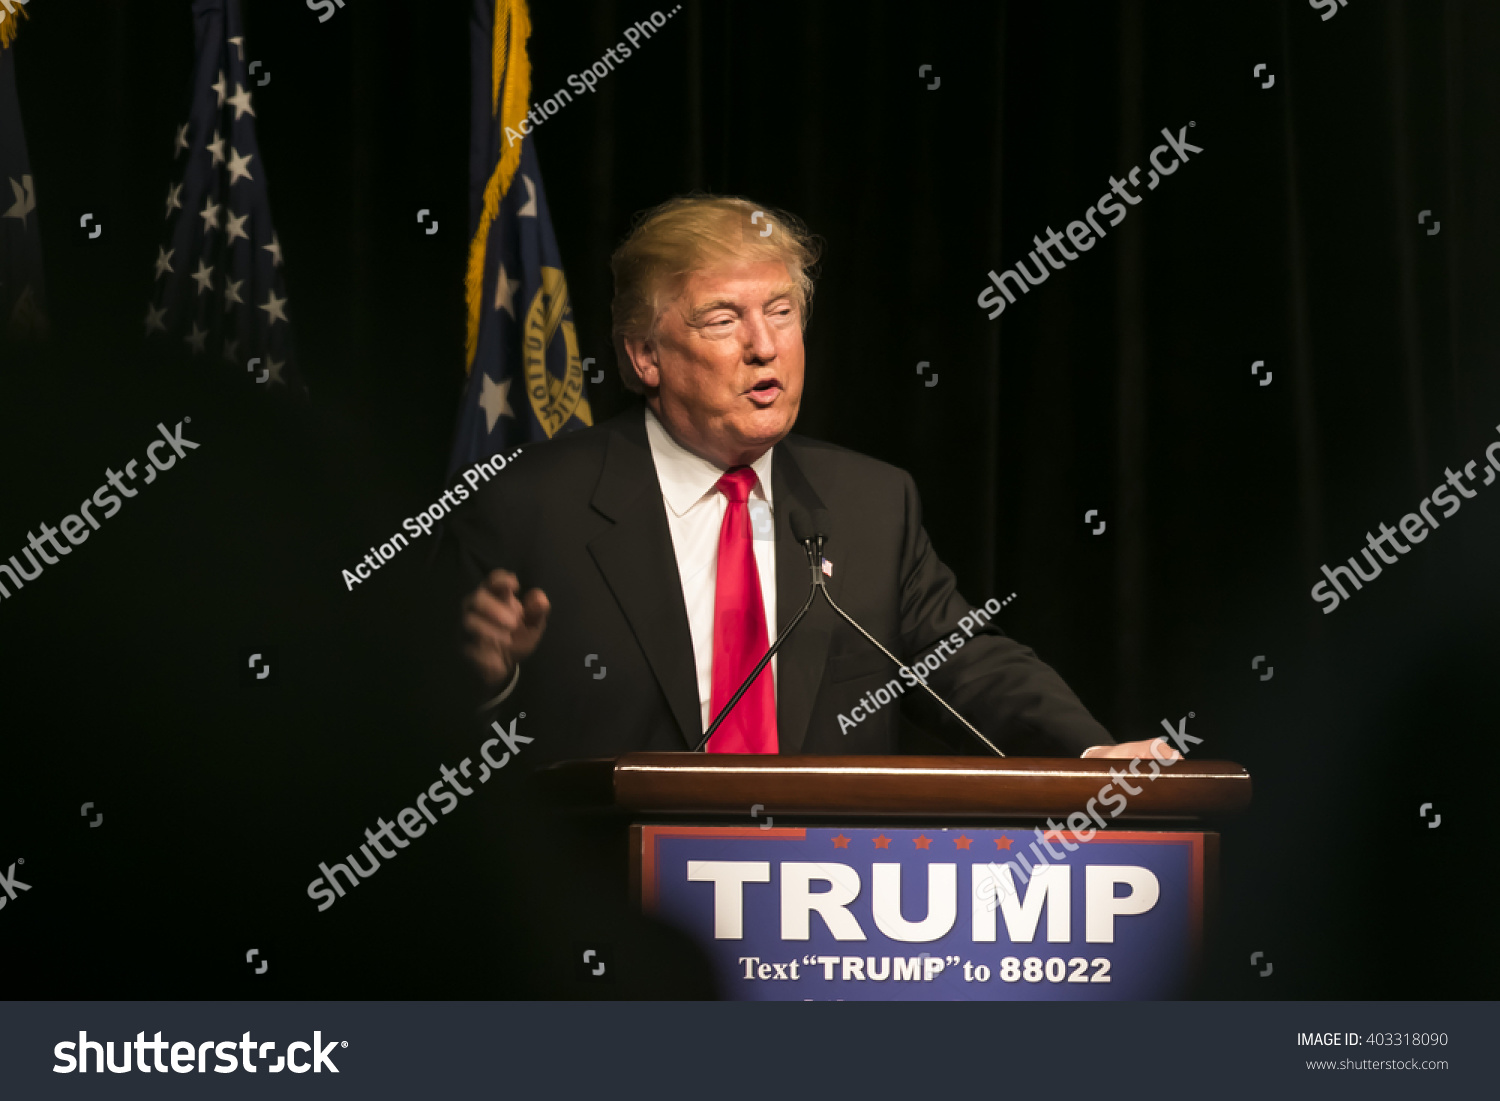 21 February 2016 Republican Presidential candidate Donald Trump speaks to several thousand supporters at a rally in Atlanta Georgia